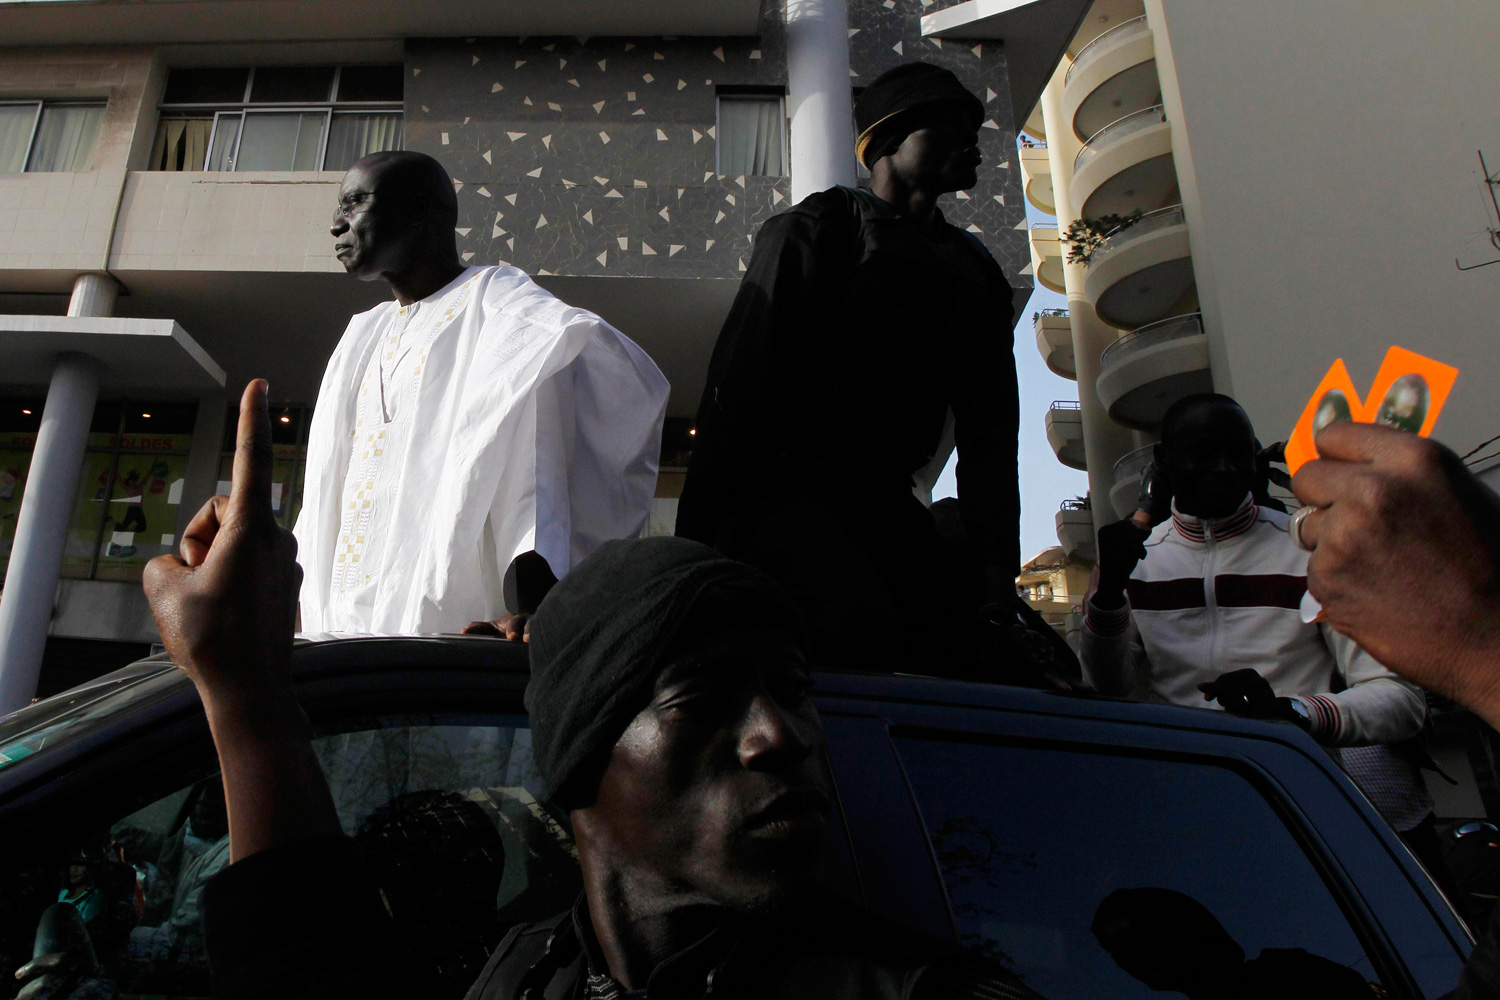 Feb. 24, 2012. Senegal's presidential candidate Seck attends an election campaign rally in Dakar.